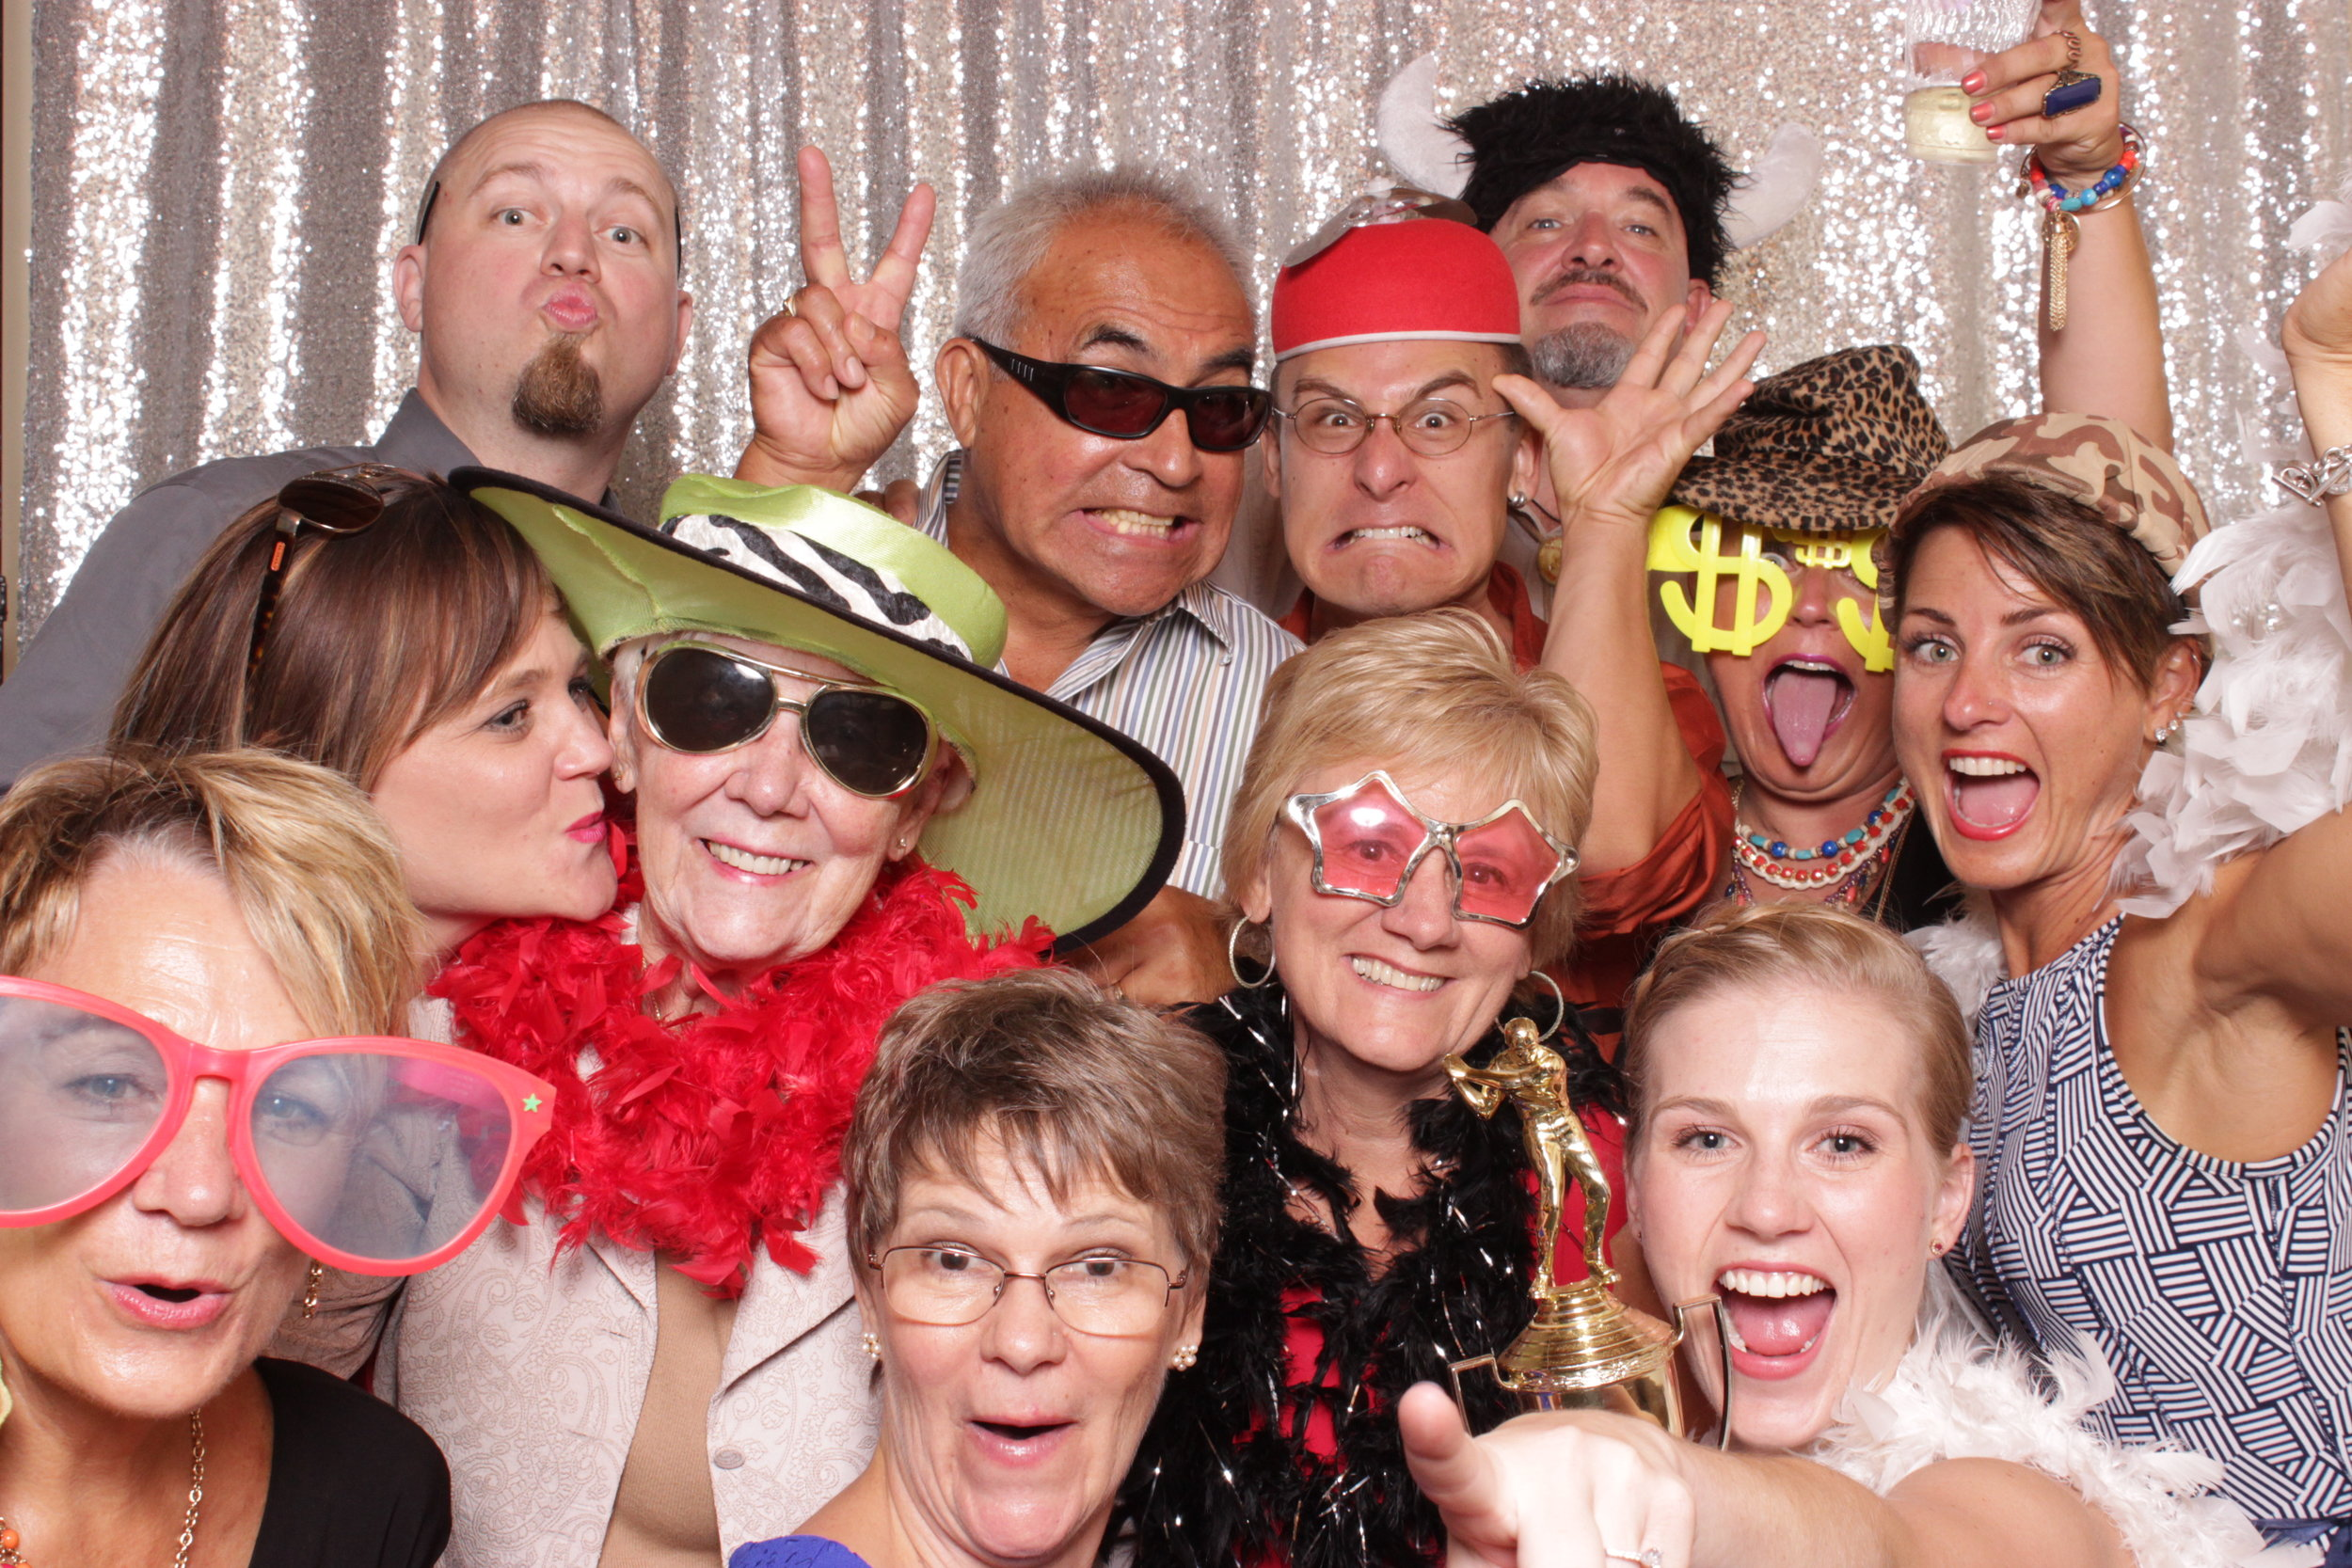 photo-booths-good-for-large-groups